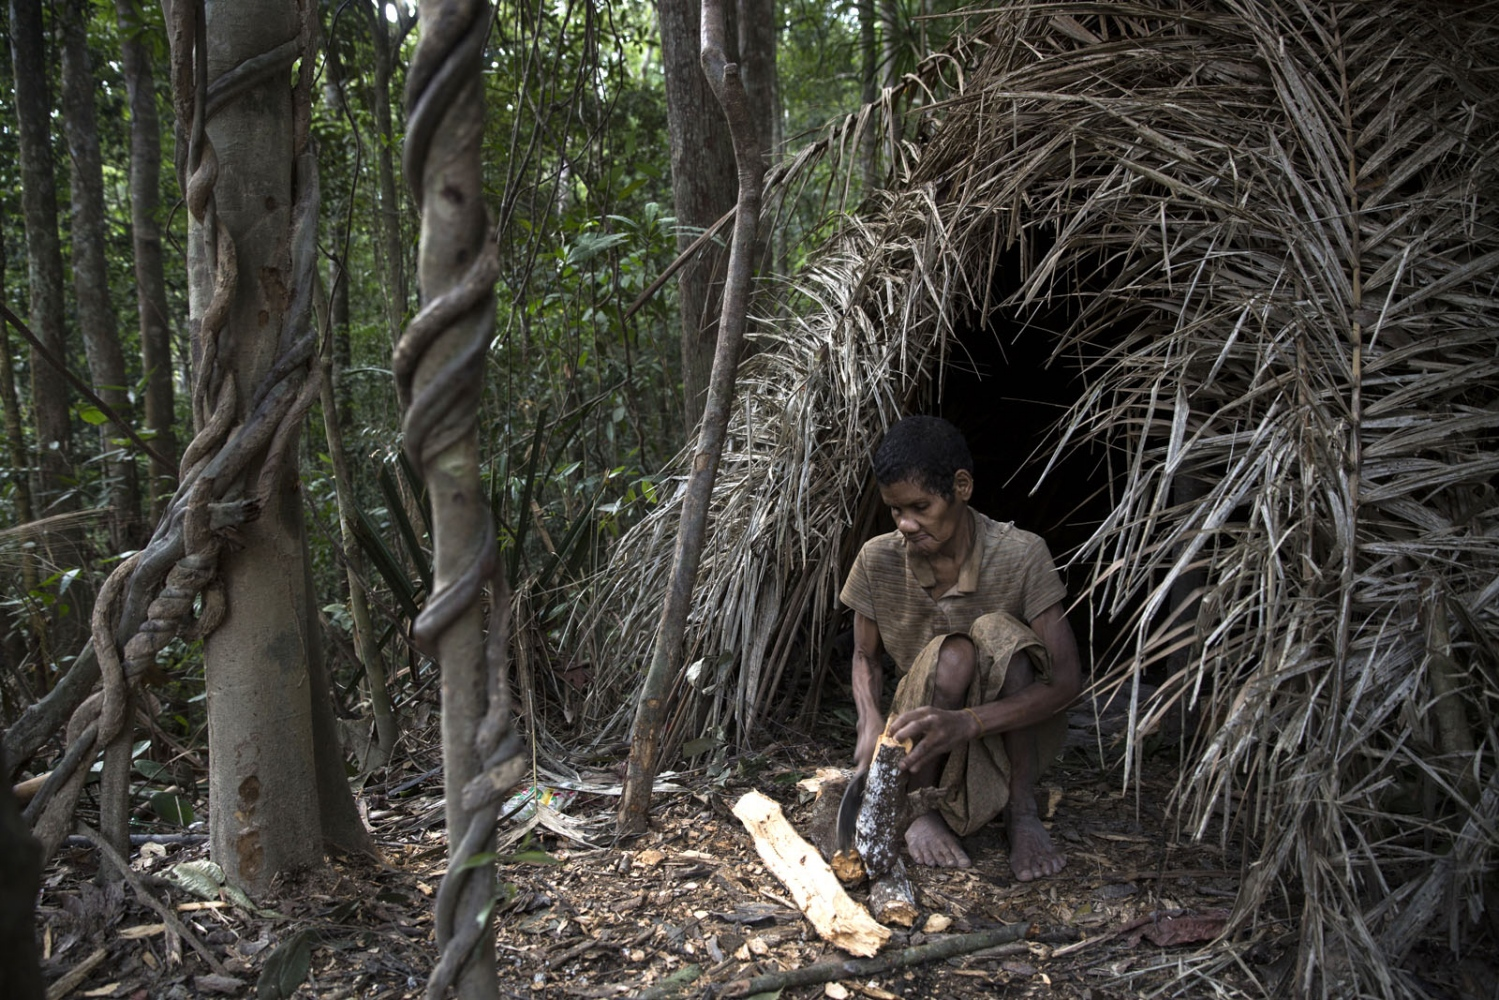 A Maniq elder prepares wood for the fire in the doorway of her shelter. Satun - September 2016